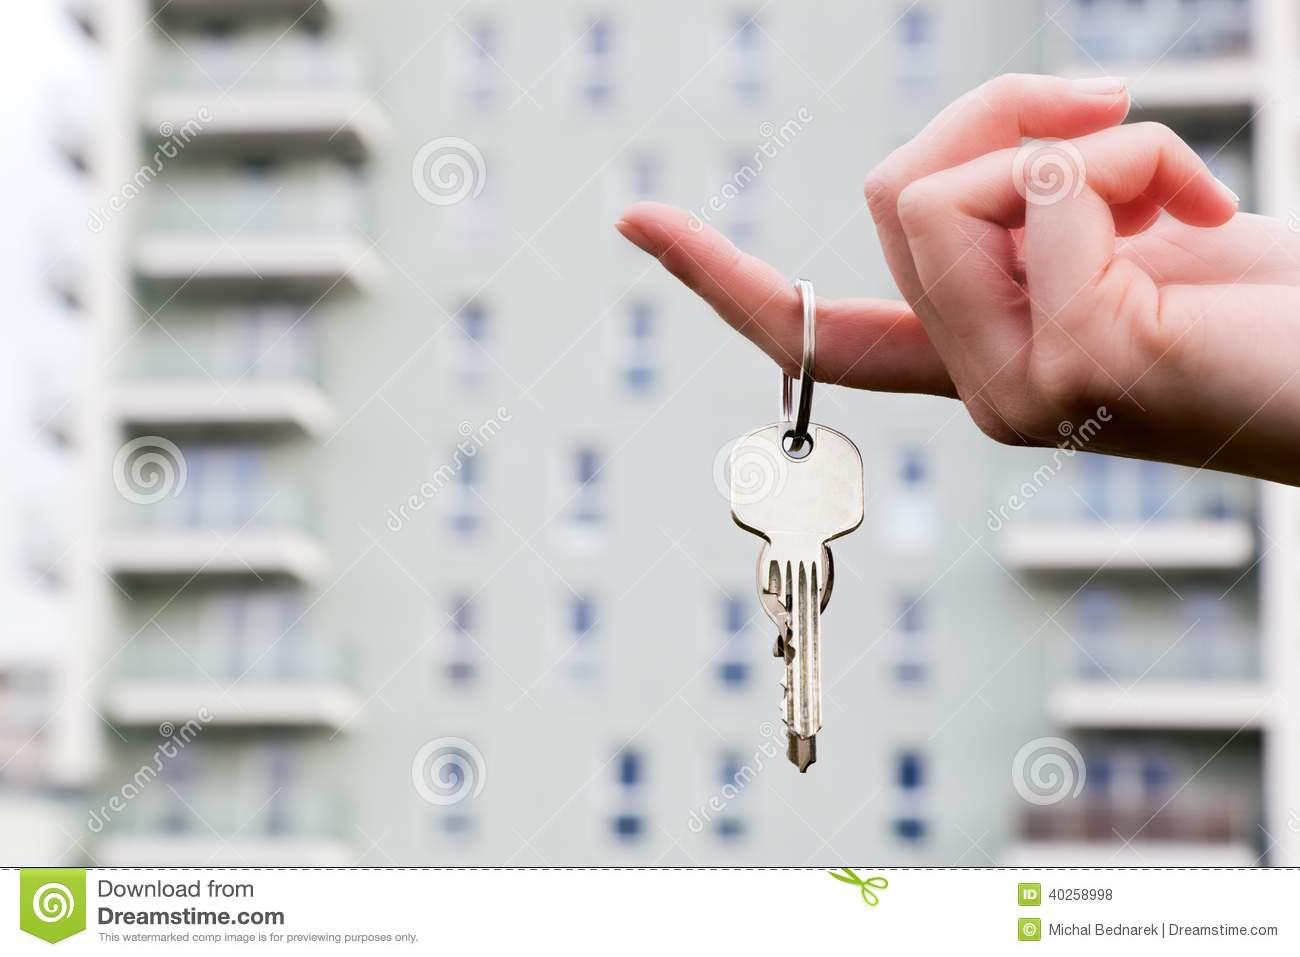 A Real Estate Agent Holding Keys To A New Apartment In Her